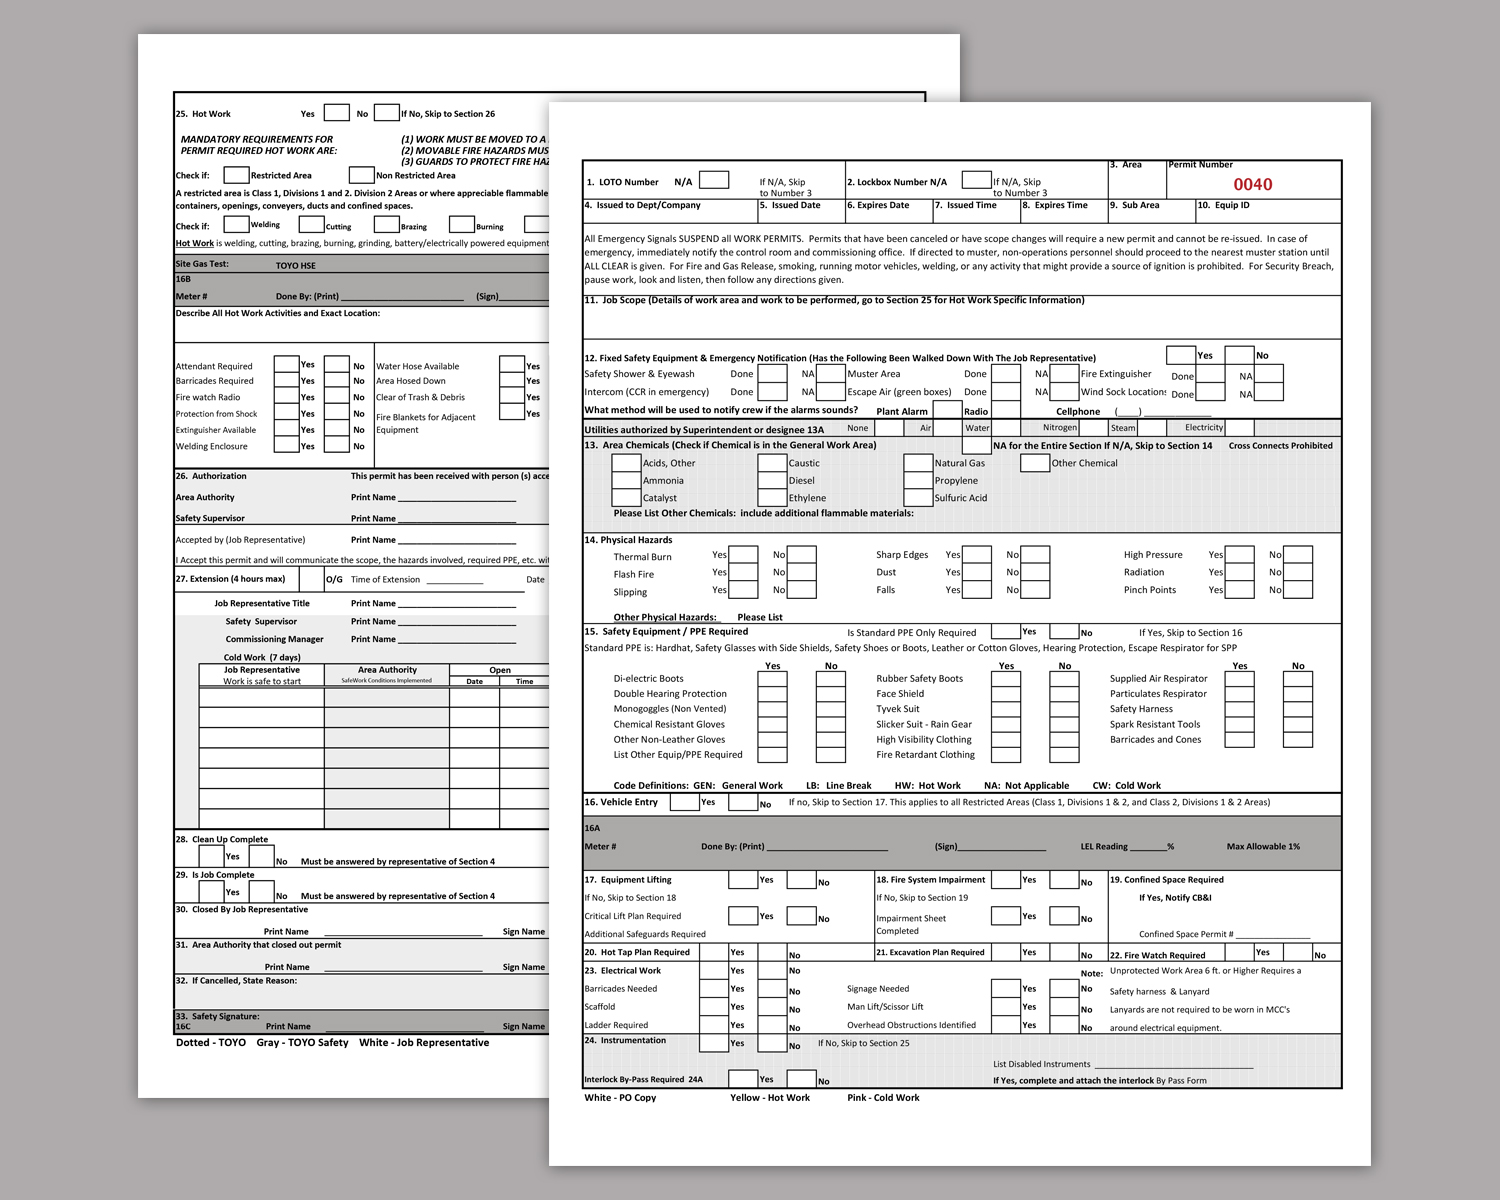 Form Sample 7.jpg